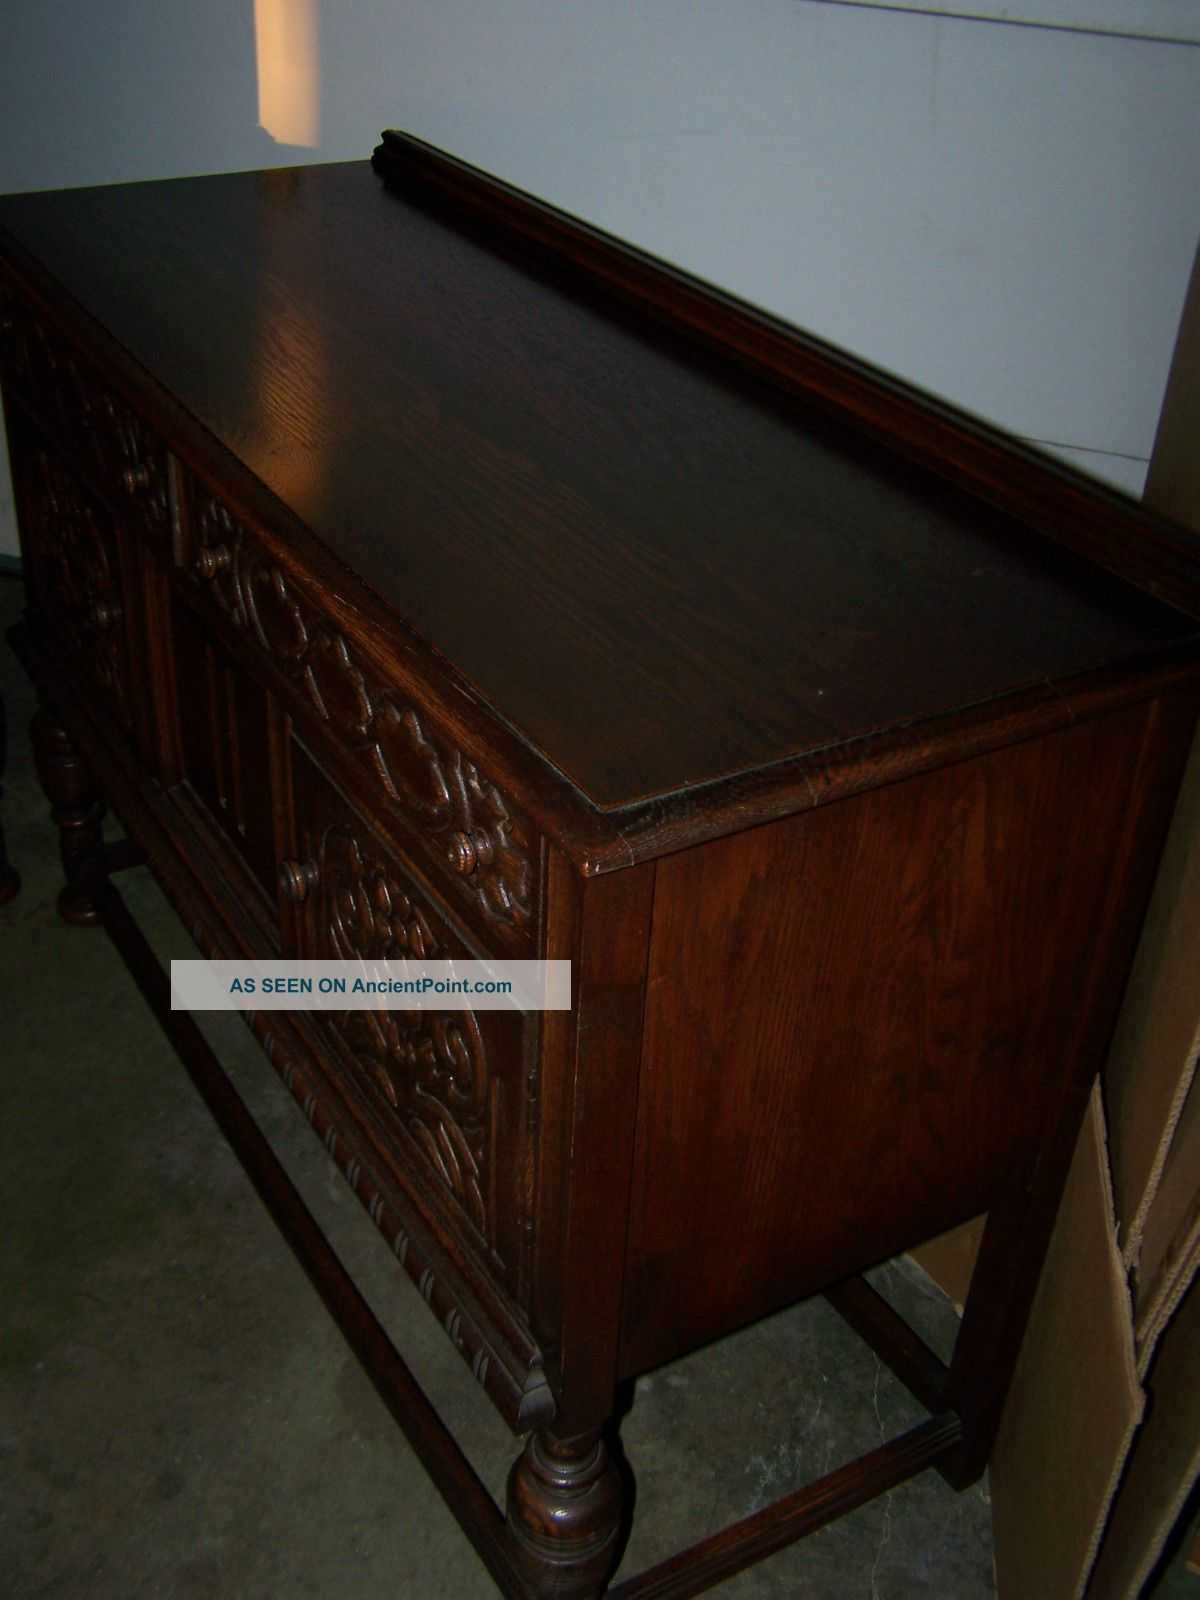 Antique furniture early 1900 beds also antique furniture from early